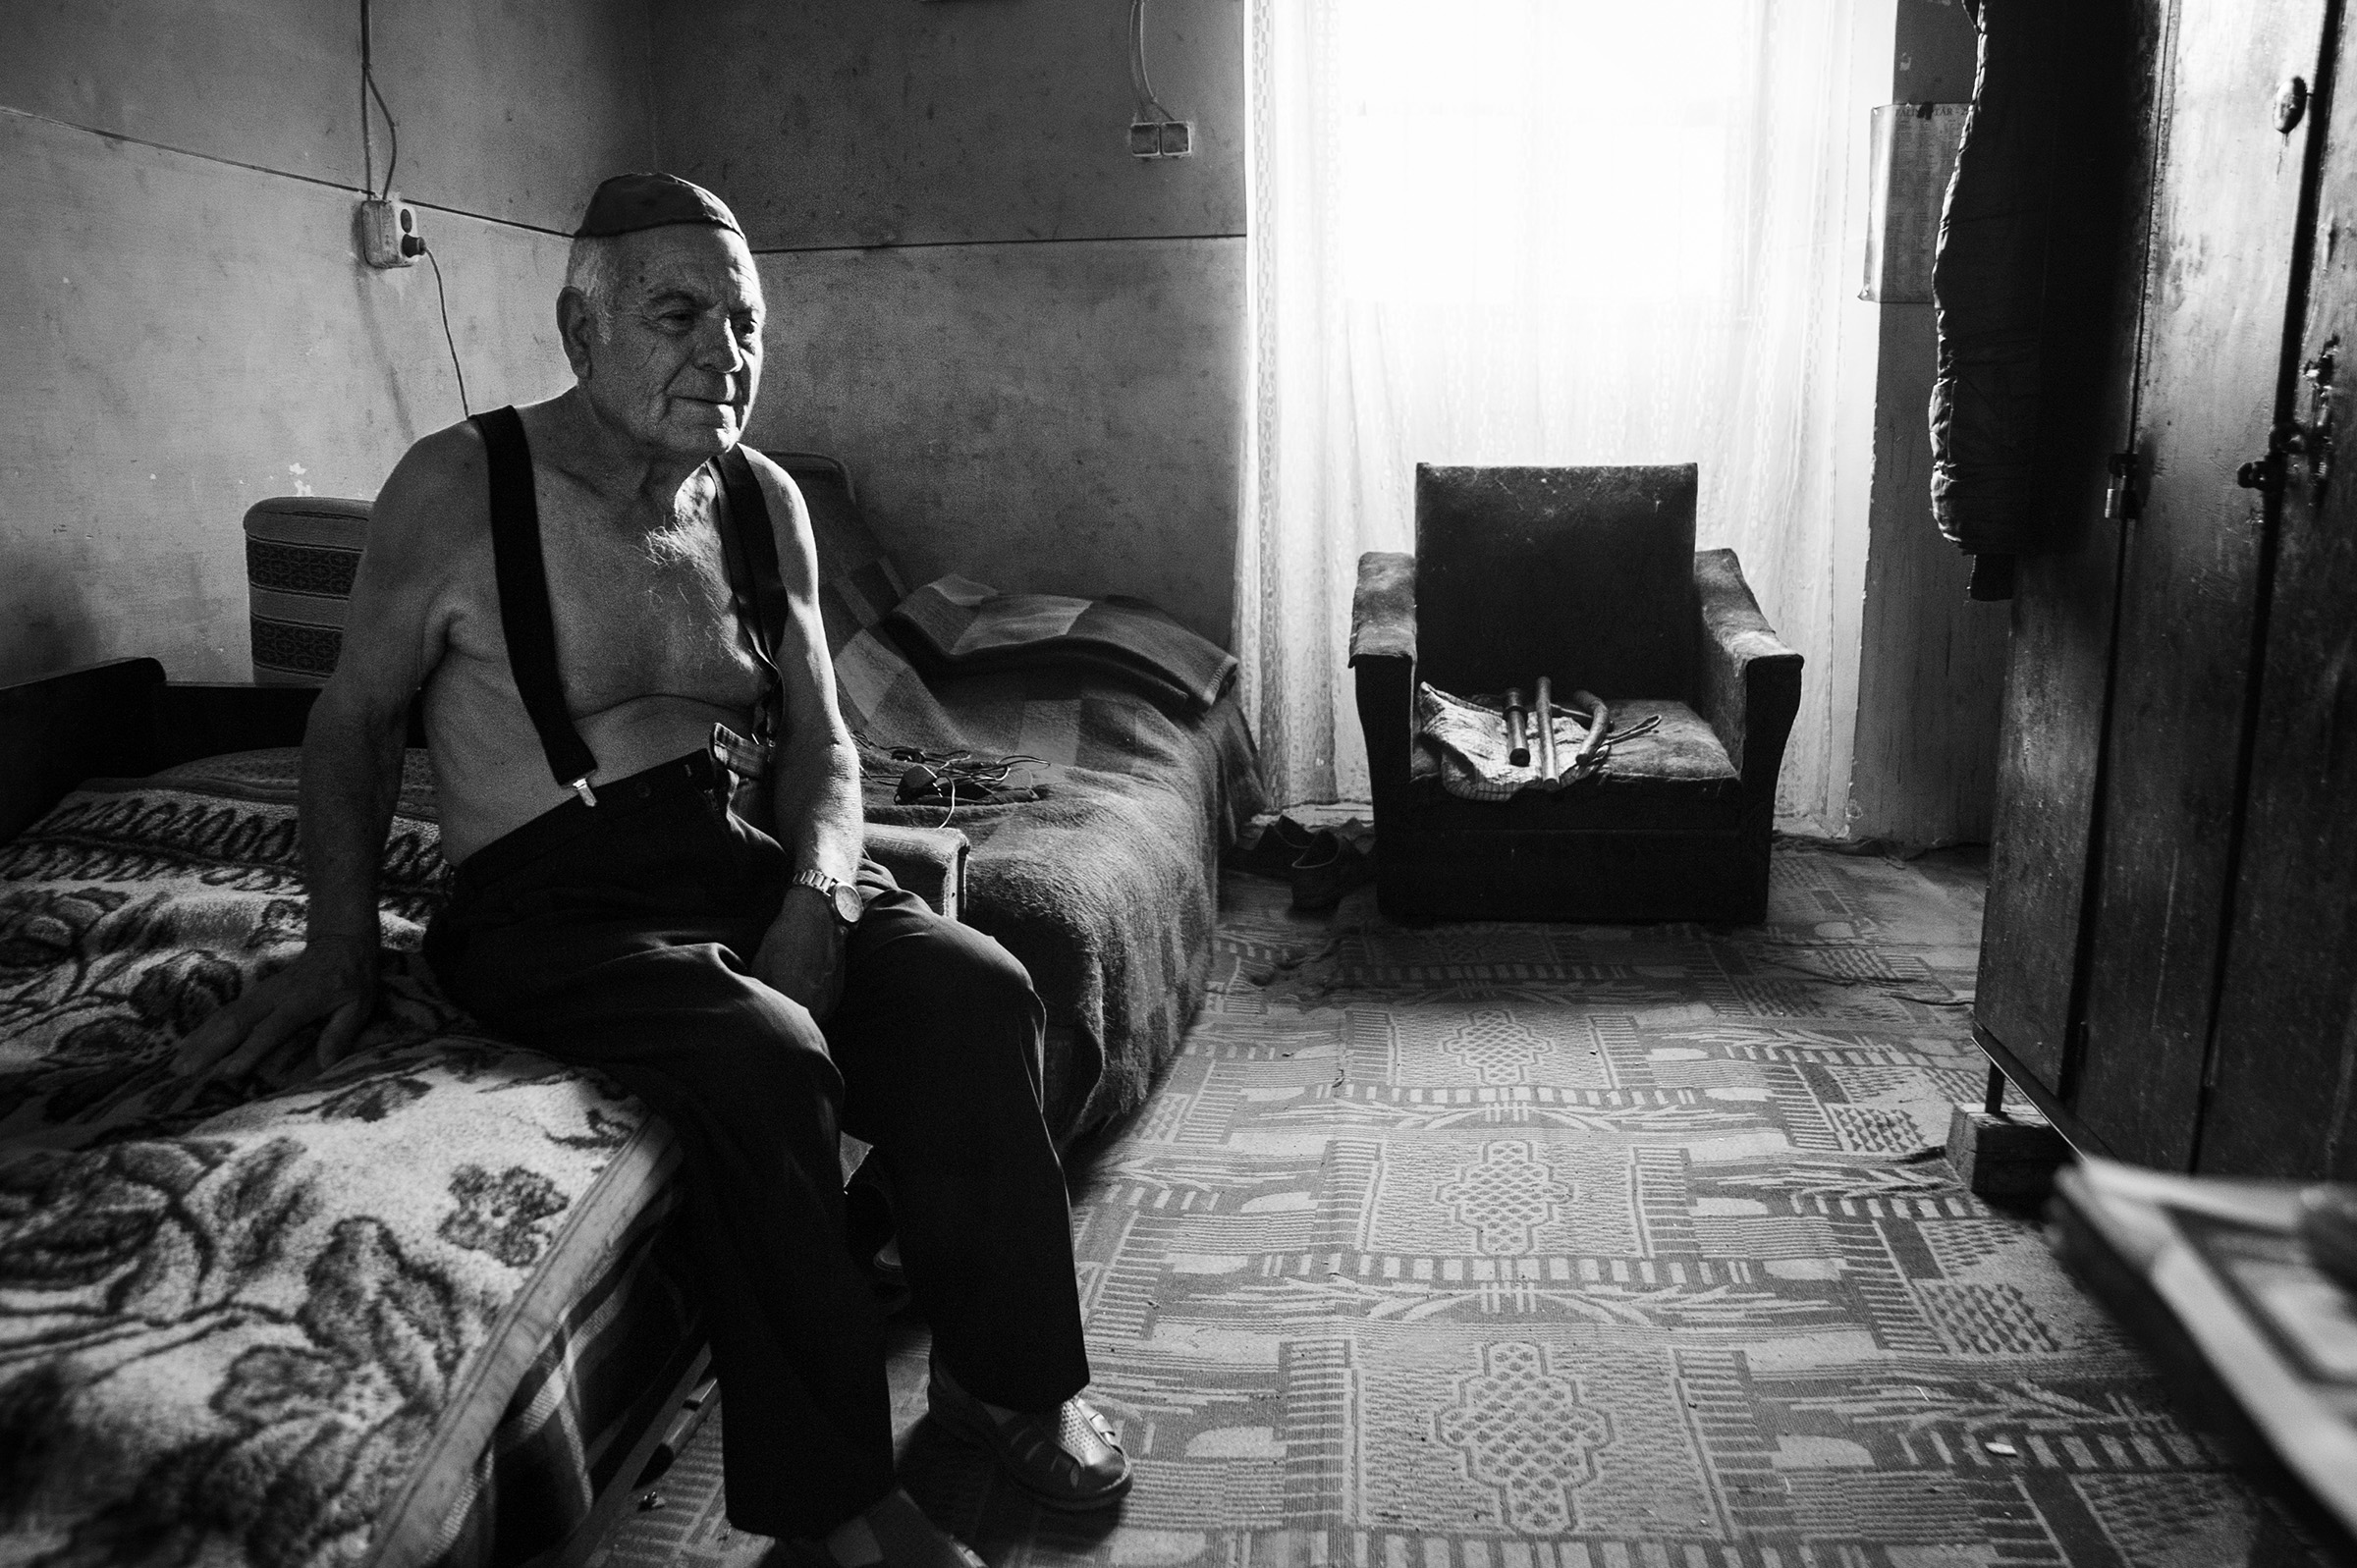 Alexandru Kepes, 79, a survivor of the Holocaust, sits in his small apartment in the back of the empty Zion Neologic Synagogue keeping watch of the sanctuary and scaring away any would-be vandals on Aug. 19, 2013. (Photo by Daniel Owen/GroundTruth)